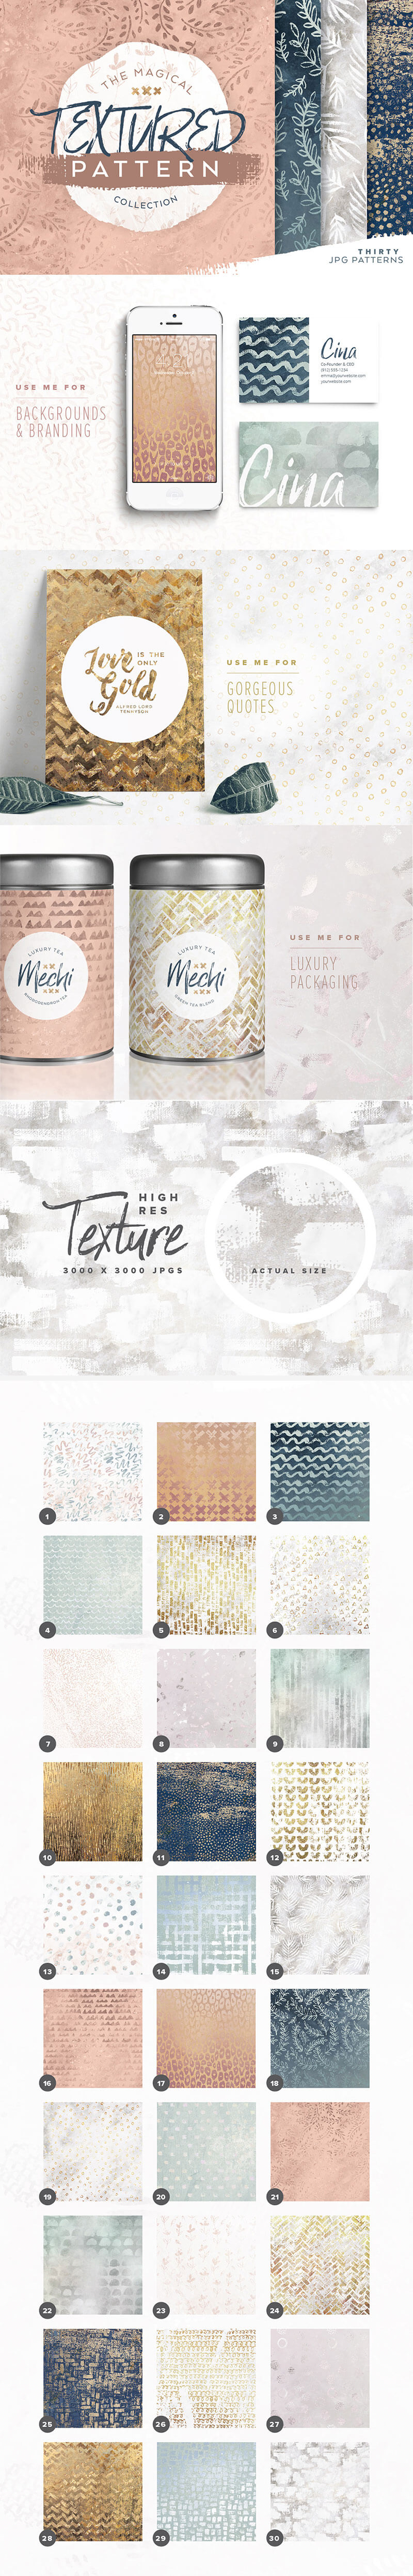 textures-august-s1